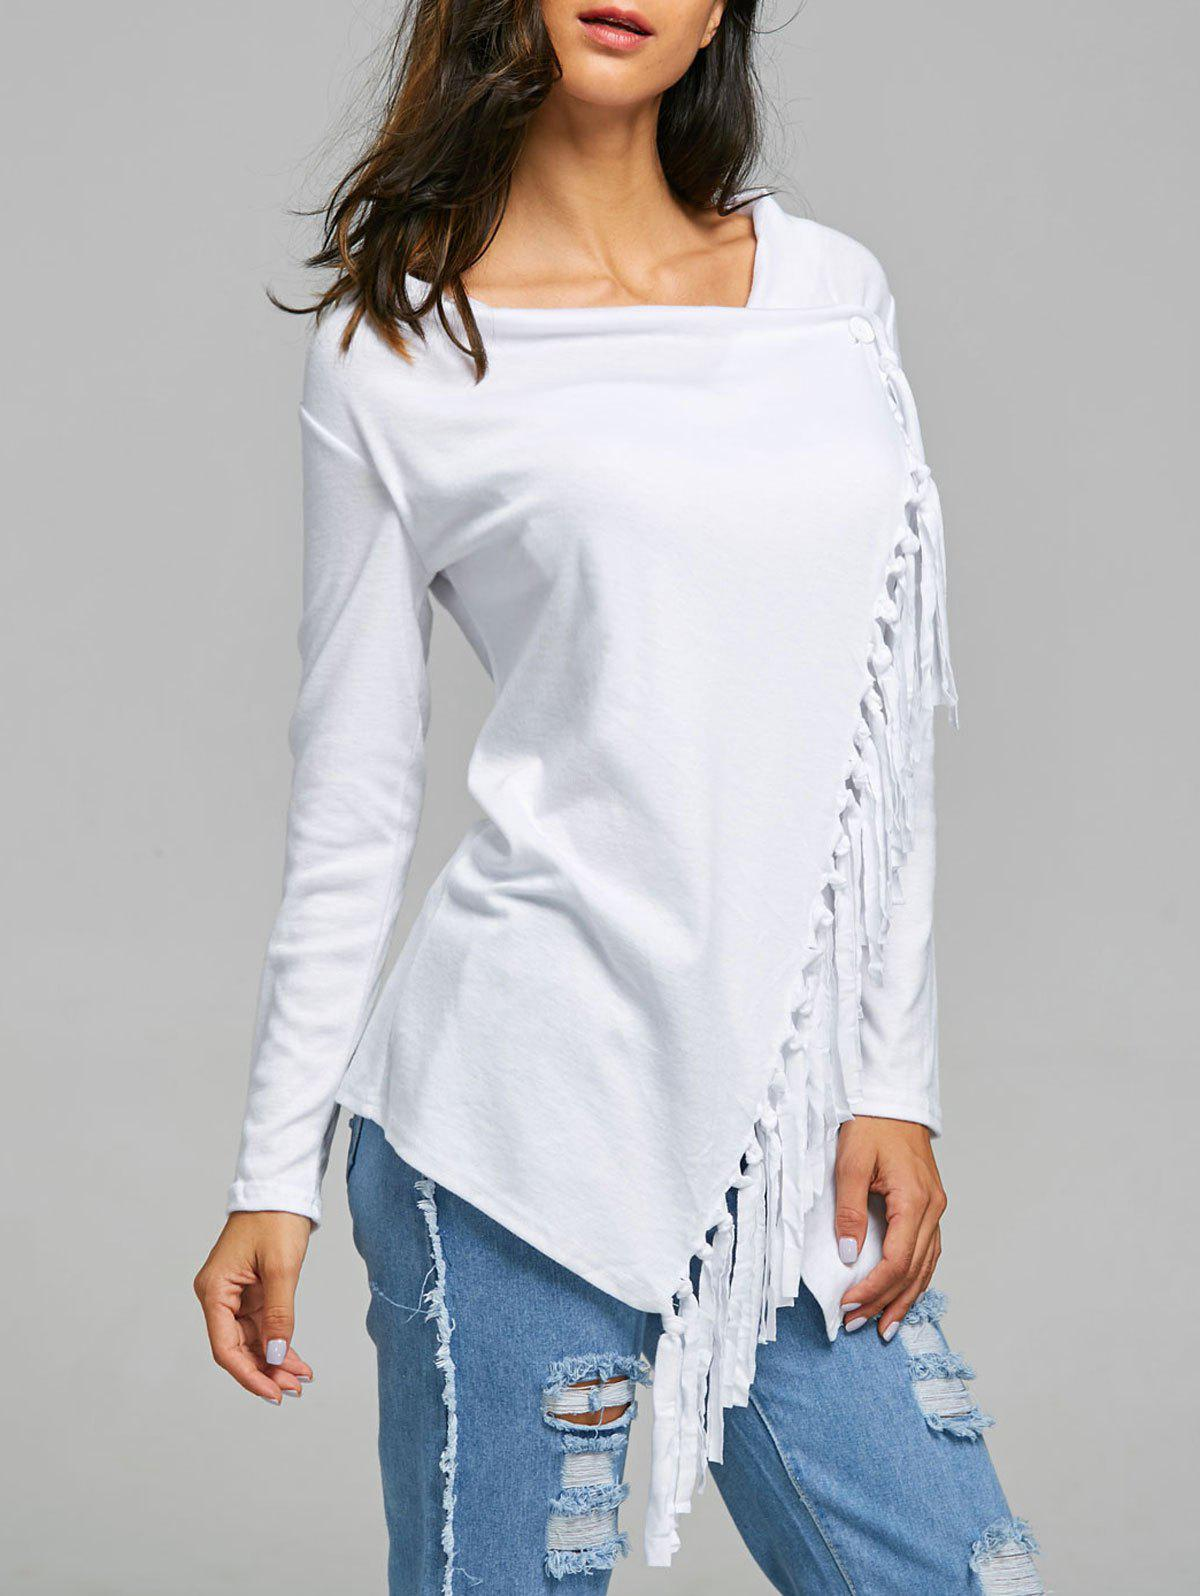 Tassel Asymmetric Long Sleeve TopWOMEN<br><br>Size: XL; Color: WHITE; Material: Polyester; Sleeve Length: Full; Collar: Cowl Neck; Style: Fashion; Embellishment: Tassel; Pattern Type: Solid; Weight: 0.3300kg; Package Contents: 1 x T-Shirt;